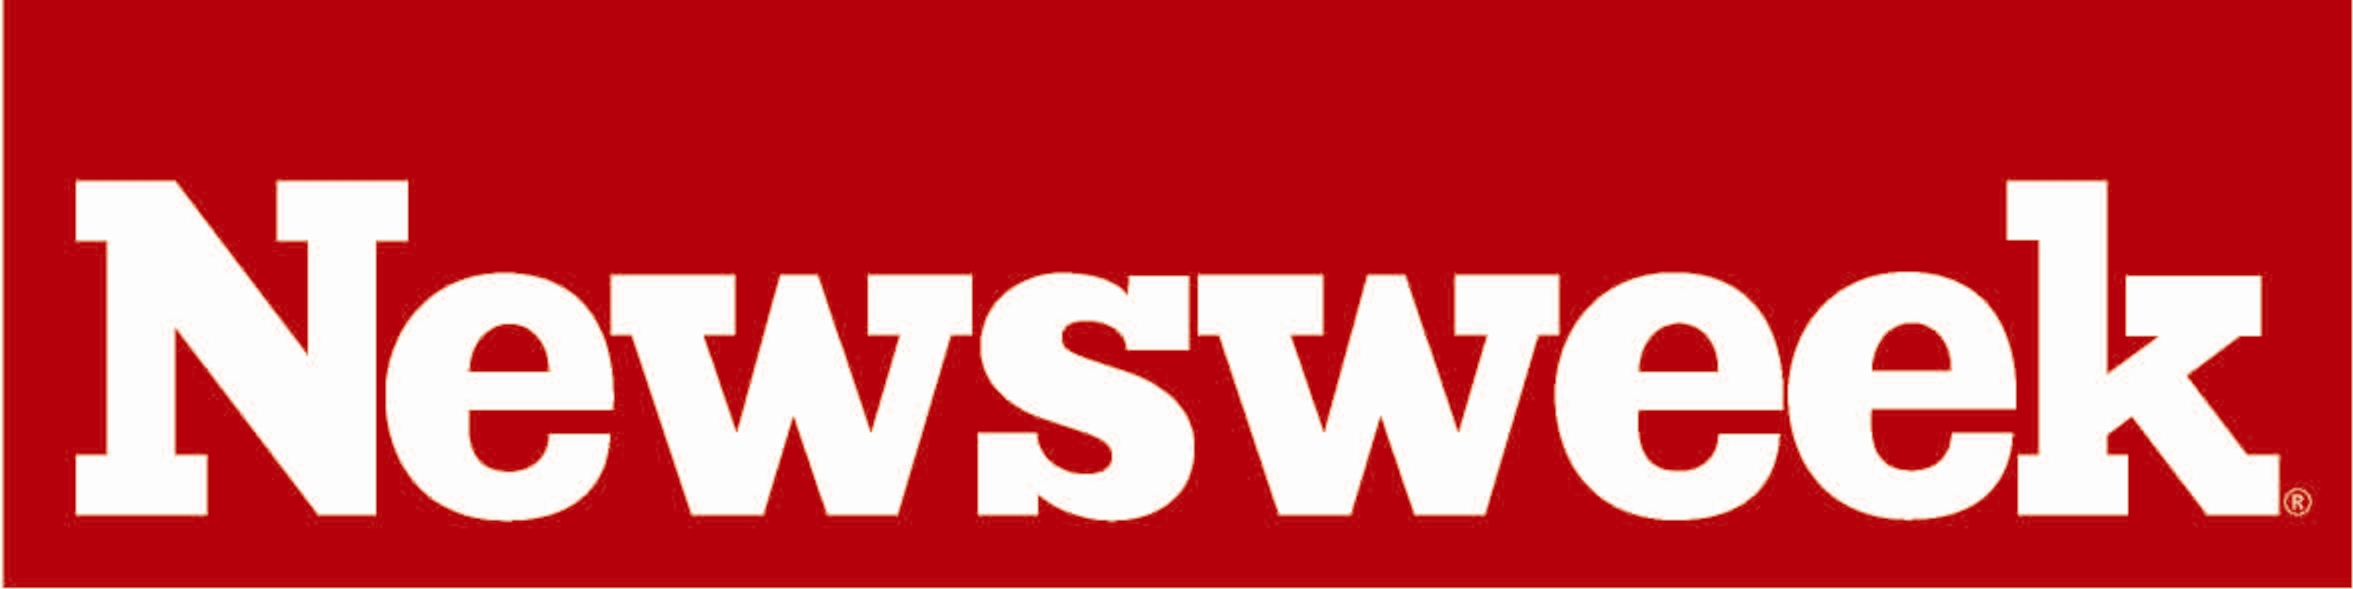 http://www.glaad.org/sites/default/files/images/2014-04/Newsweeklogo5.jpg